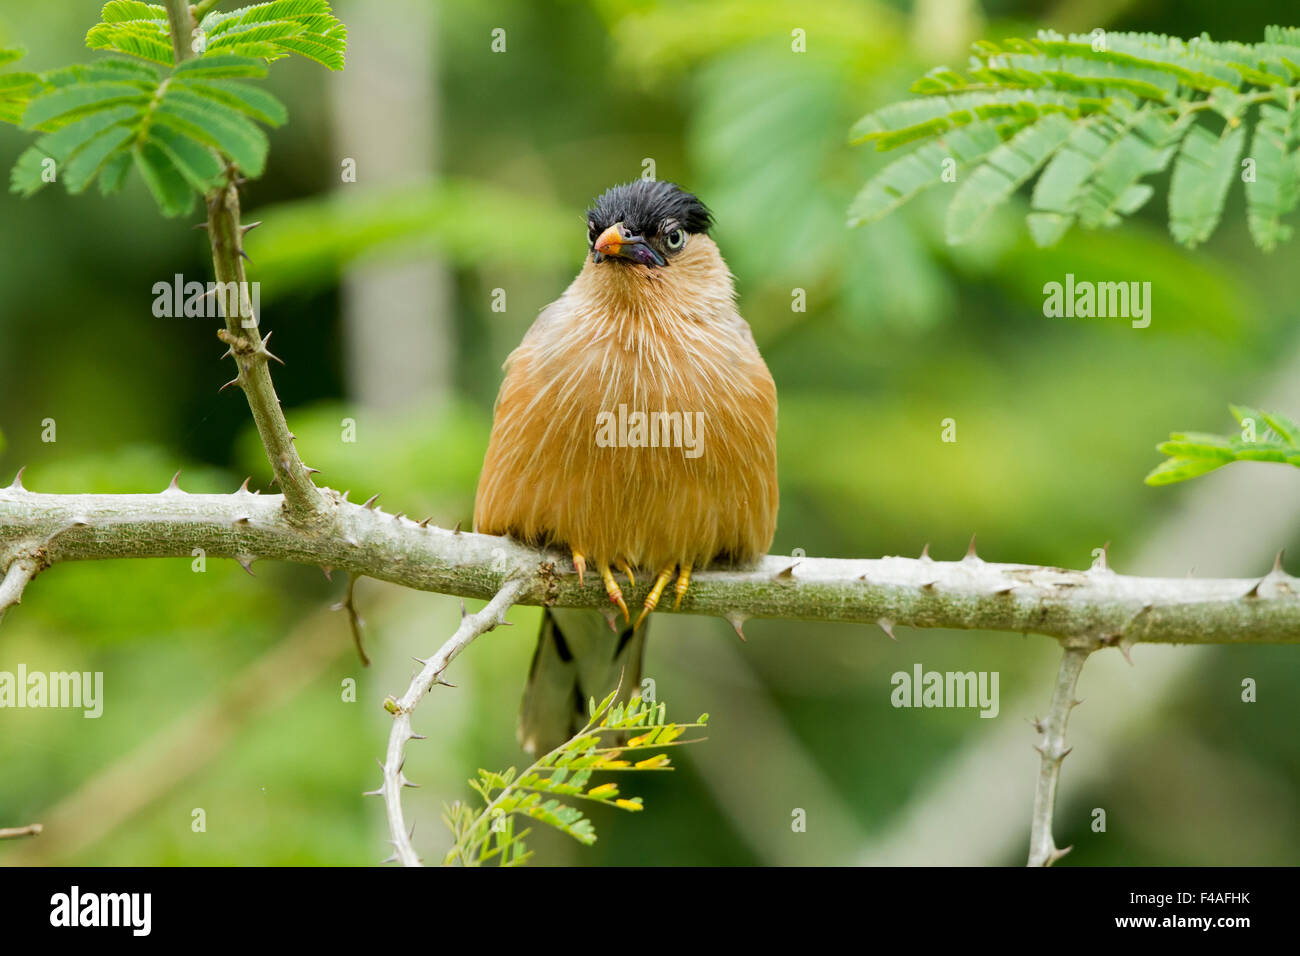 The brahminy myna or brahminy starling (Sturnia pagodarum) is a member of the starling family of birds. - Stock Image